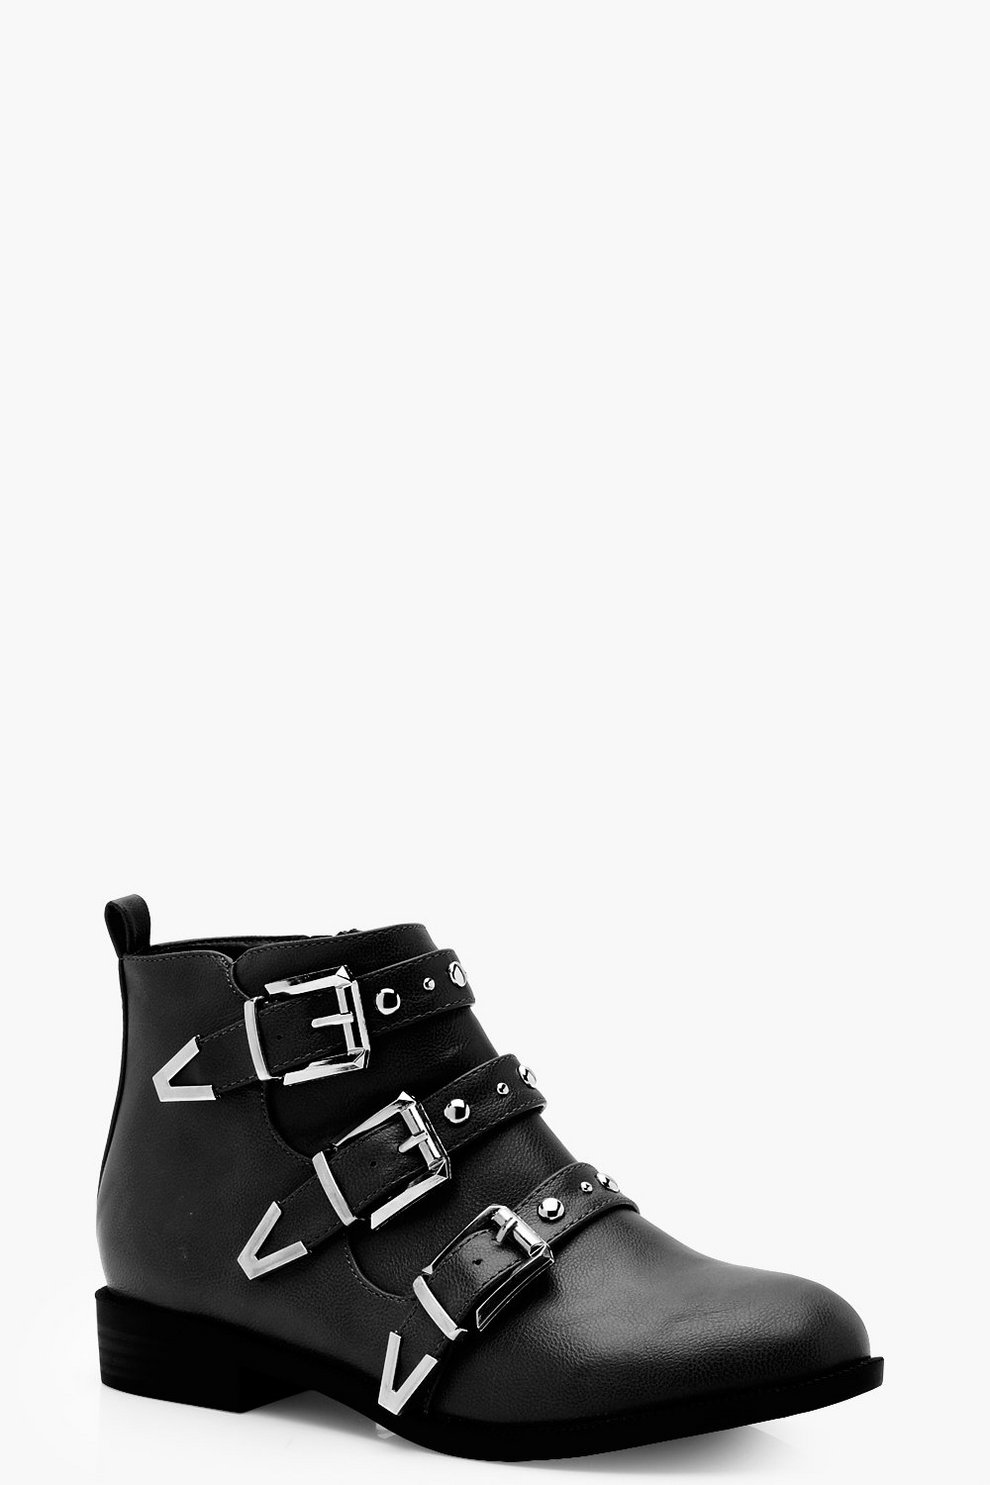 b94f2a0d913c Studded Strap Chelsea Ankle Boots